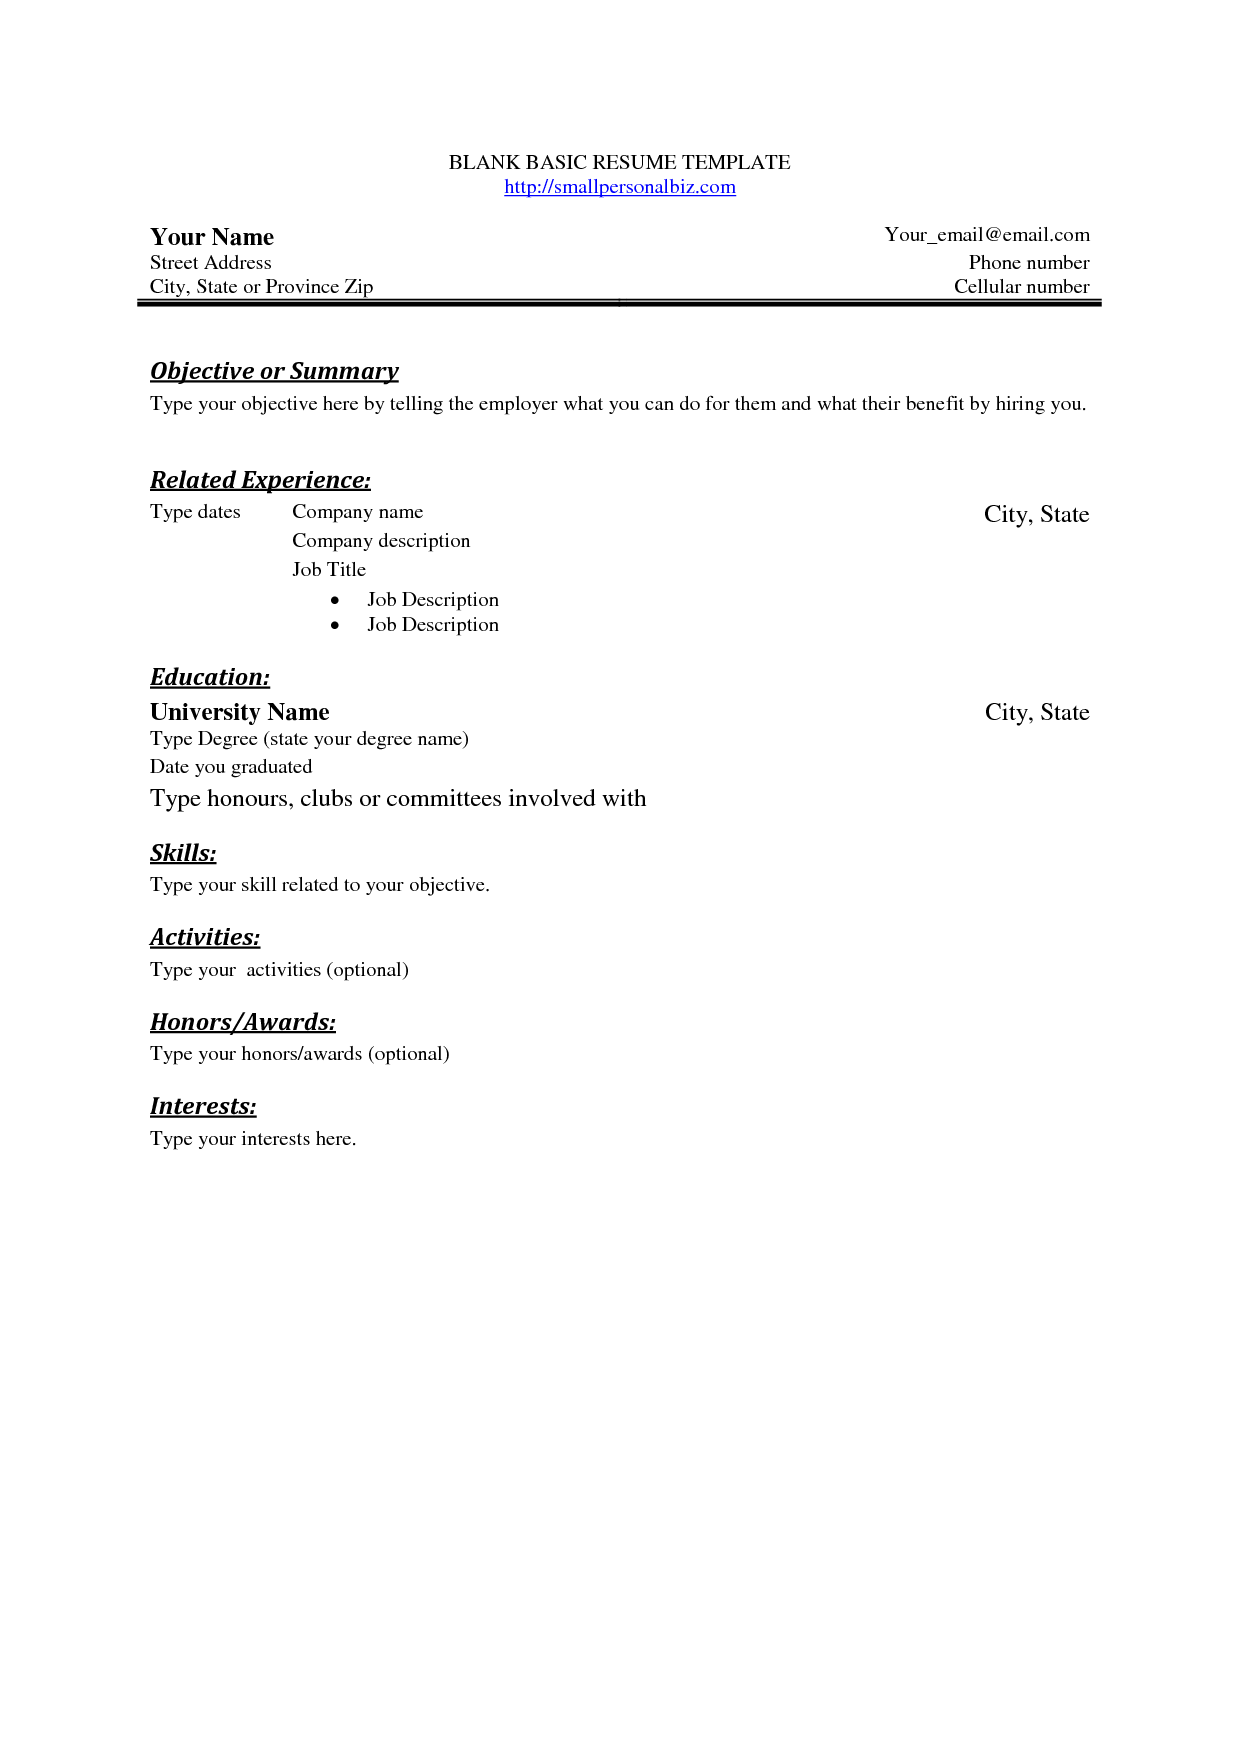 How To Make Simple Resume Free Basic Blank Resume Template Free Basic Sample